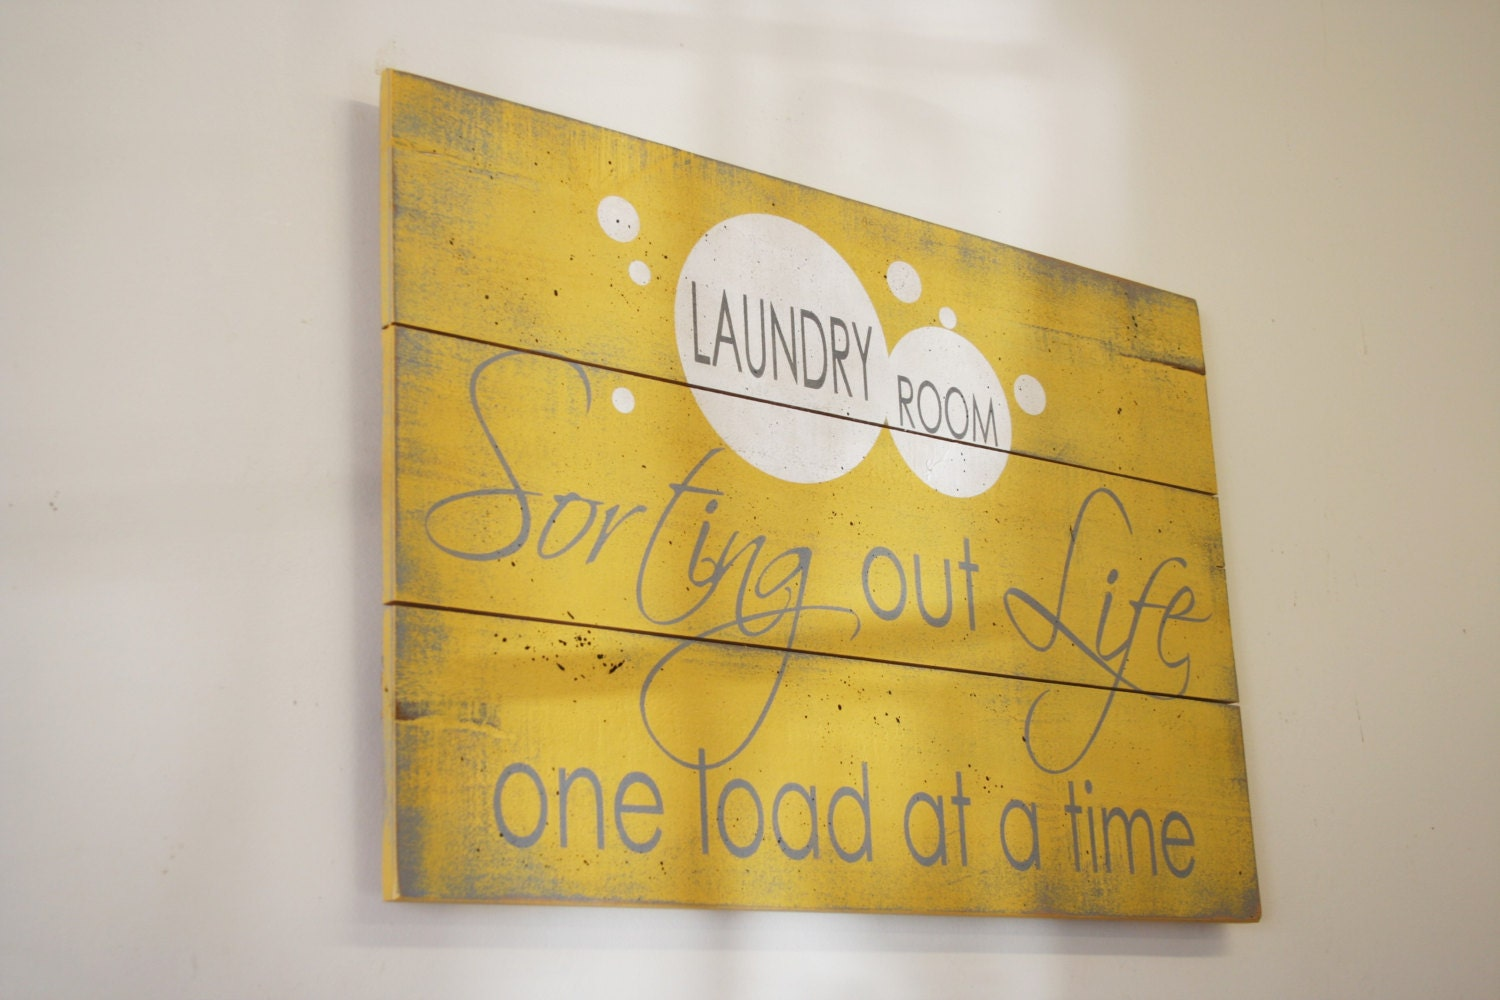 Vintage Laundry Signs | Wall Plate Design Ideas